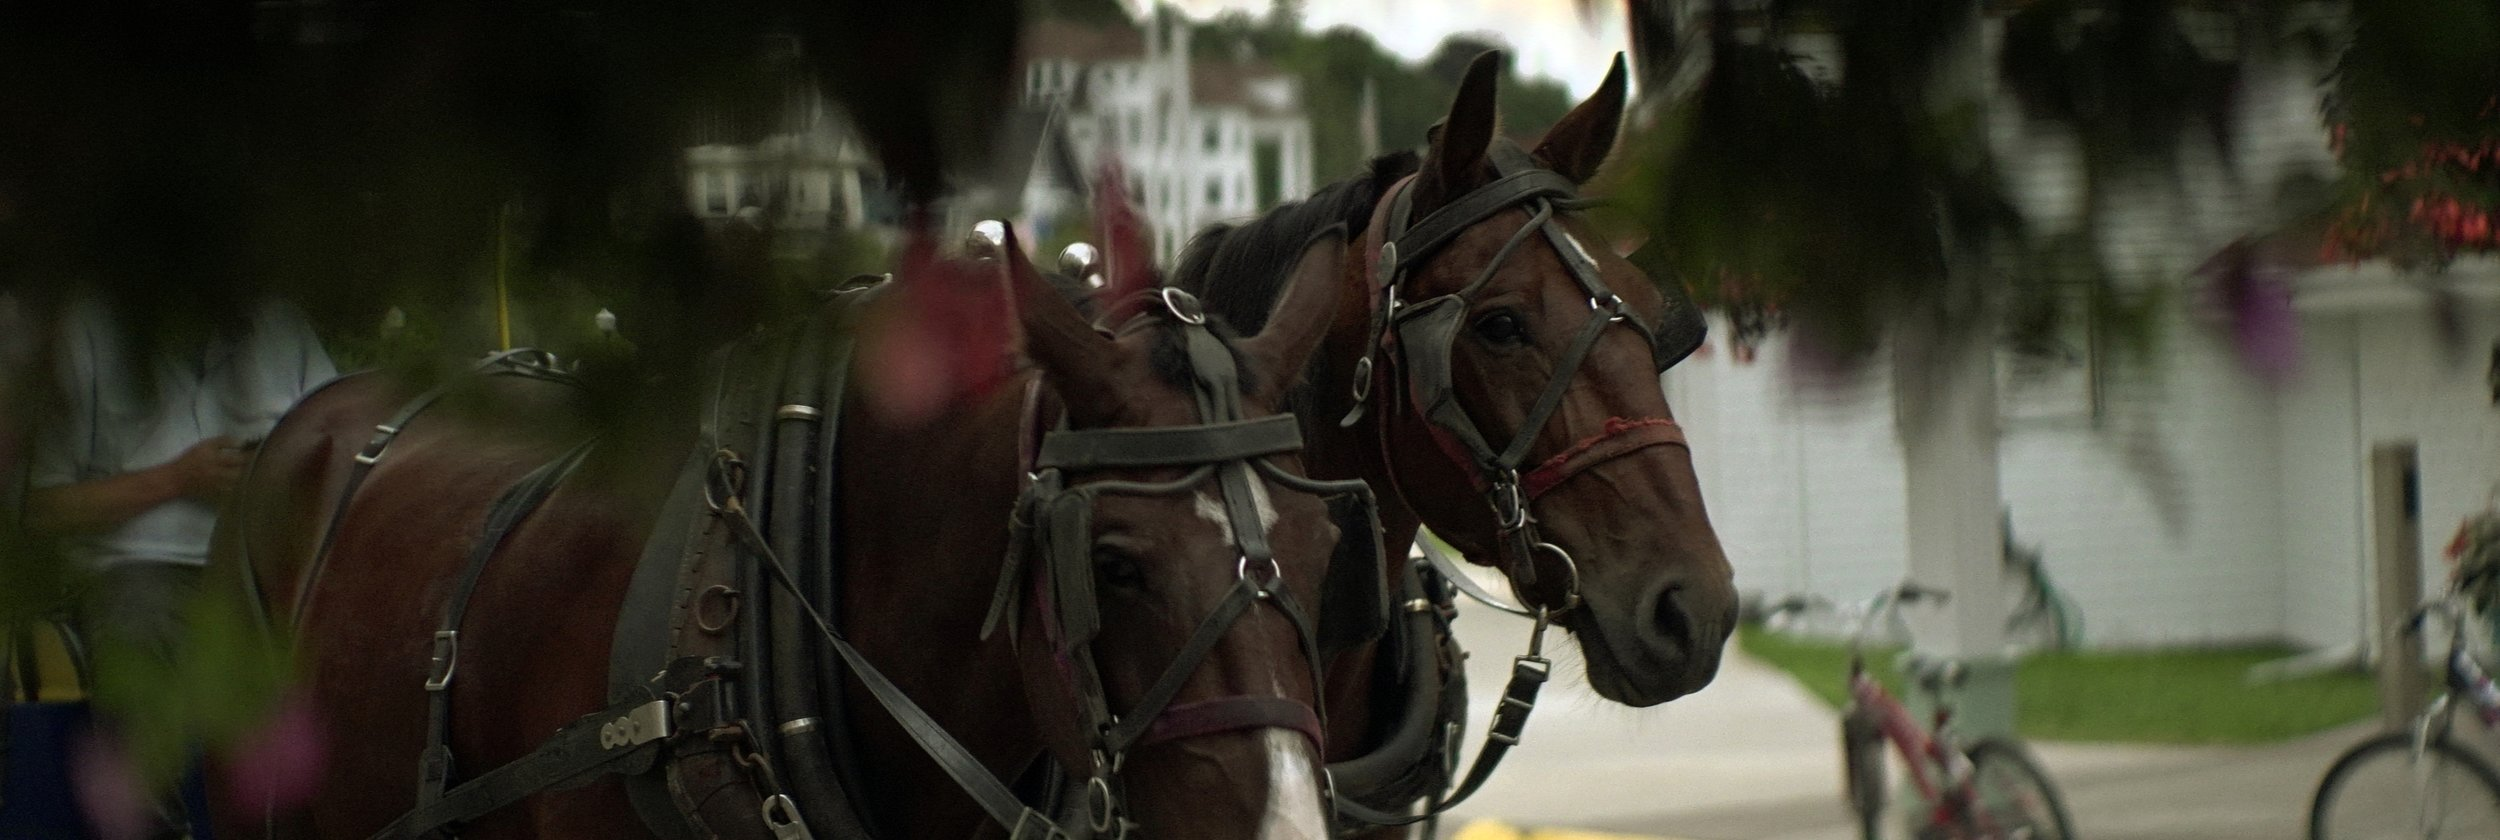 Lomo 100mm anamorphic lens | A pair of horses pulling a buggy in downtown Mackinac Island, MI - Photo by: Keith Nickoson